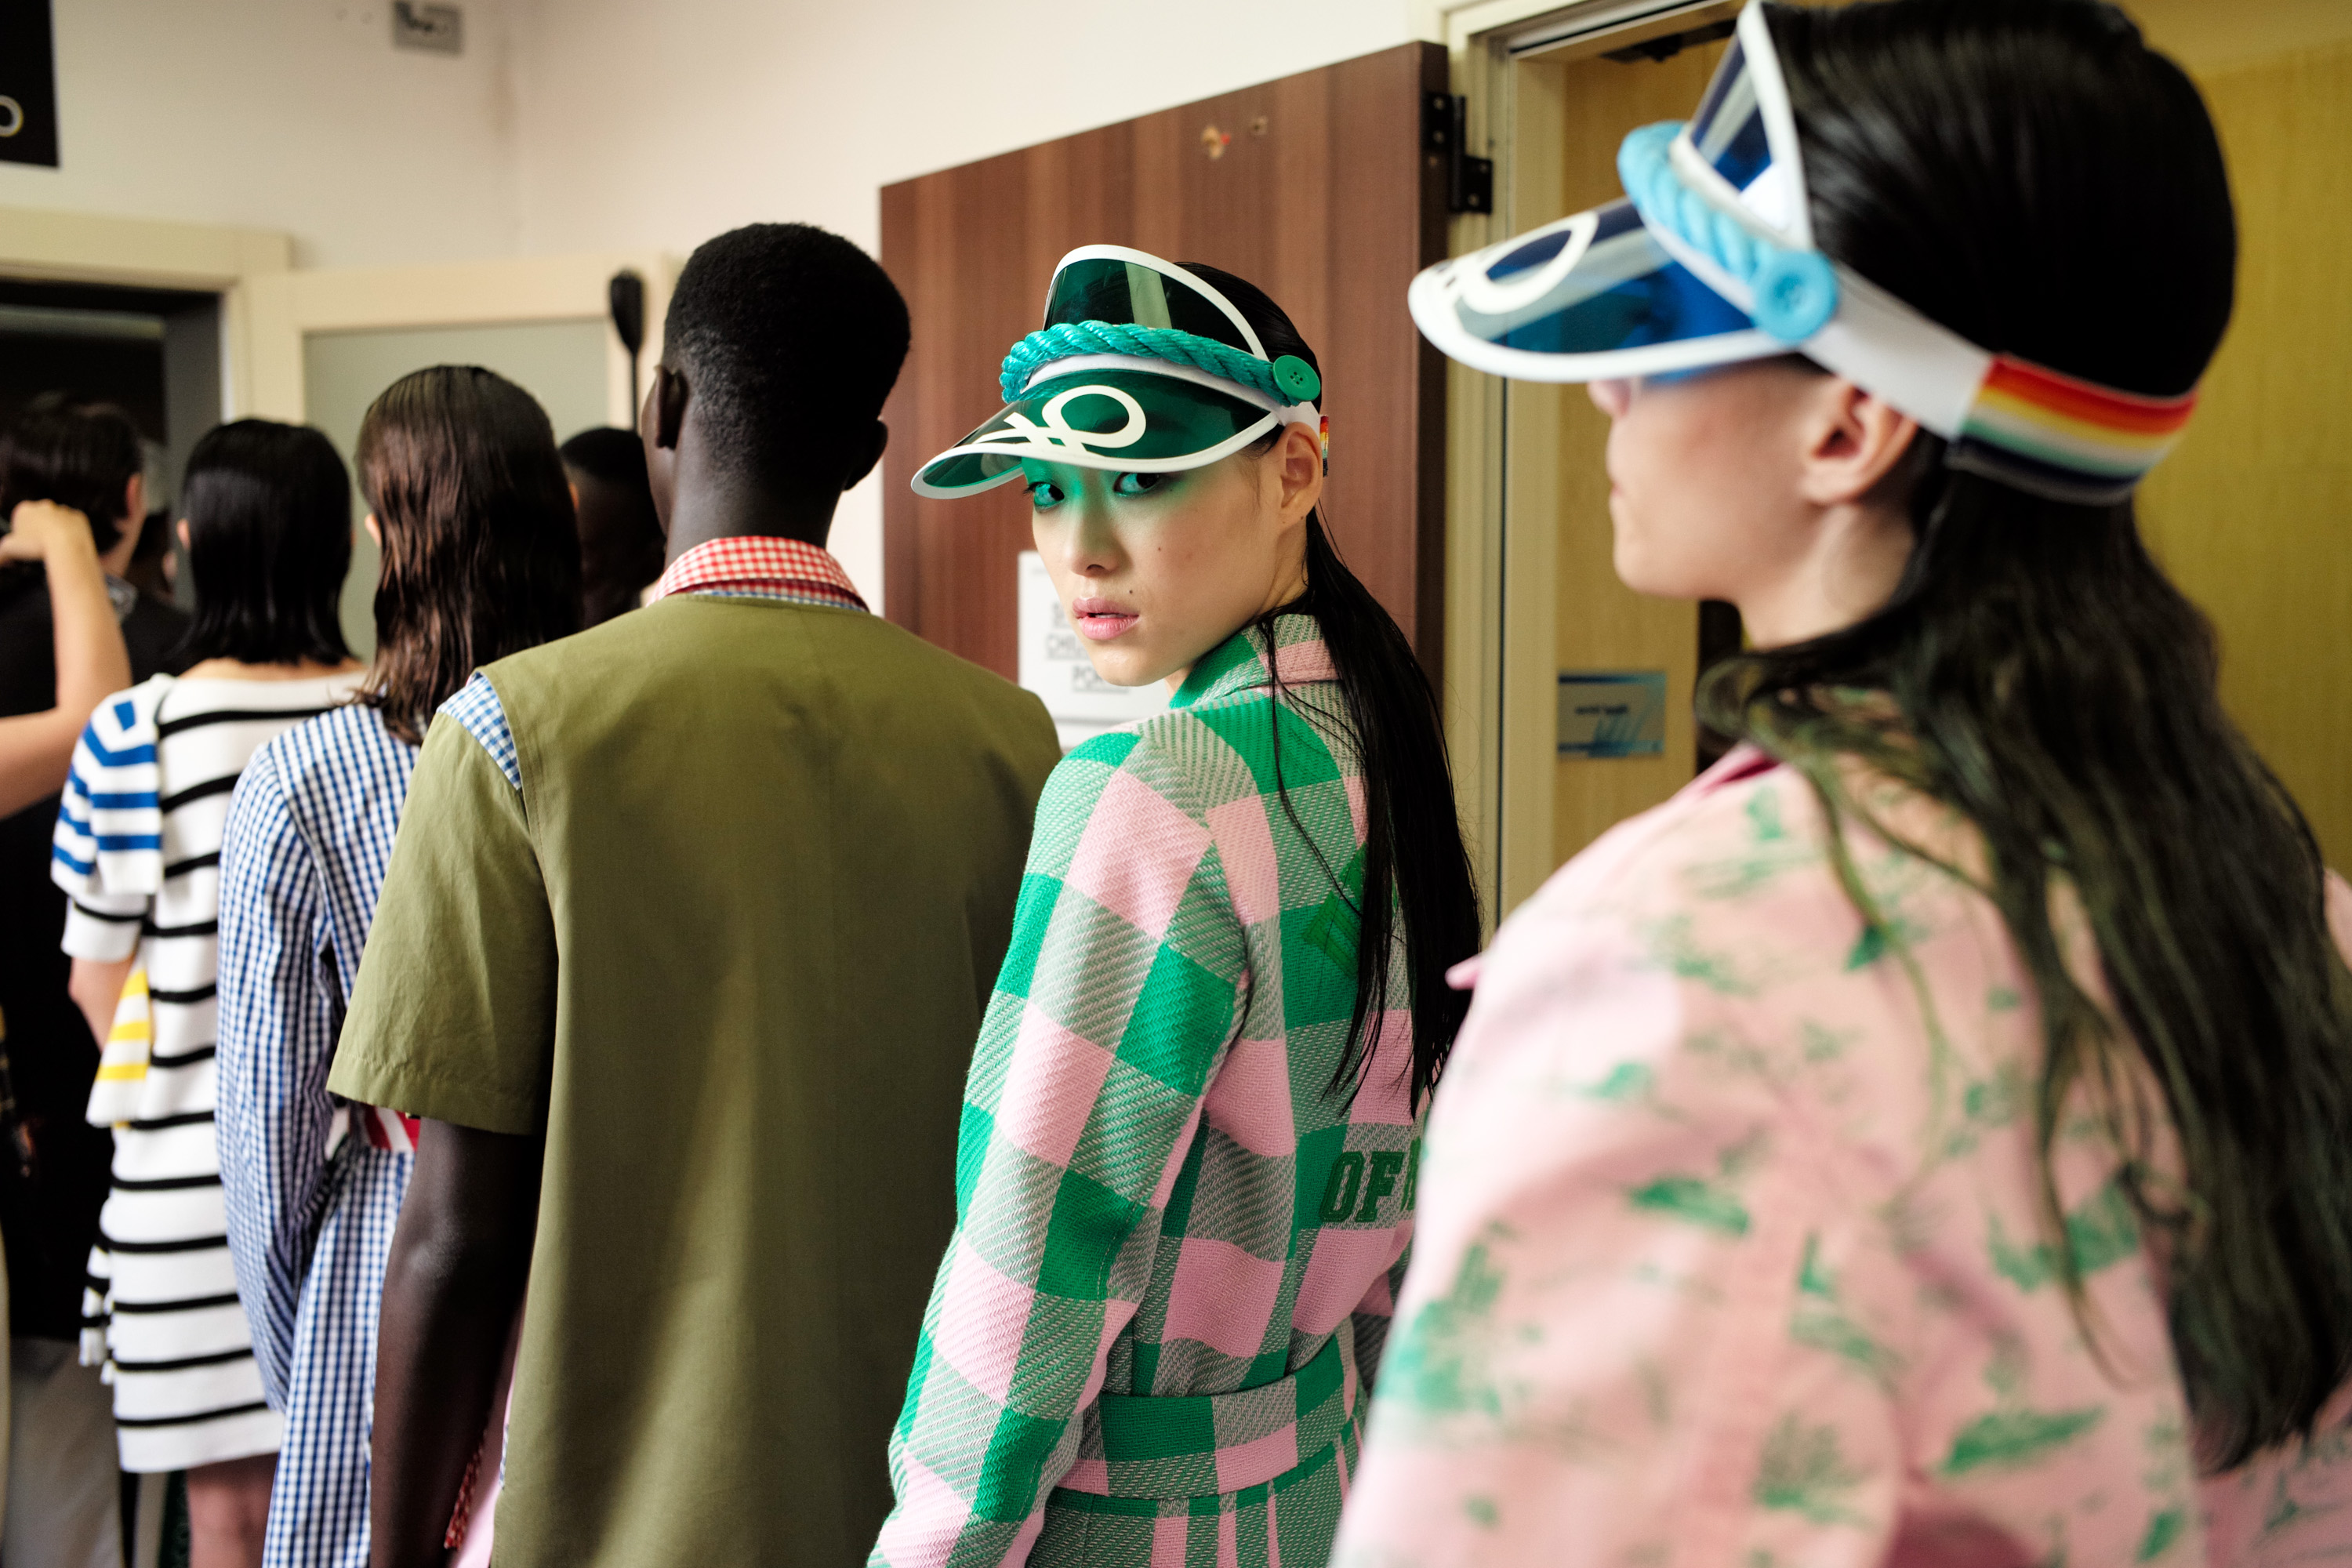 Benetton backstage at ss20 Colorwave show